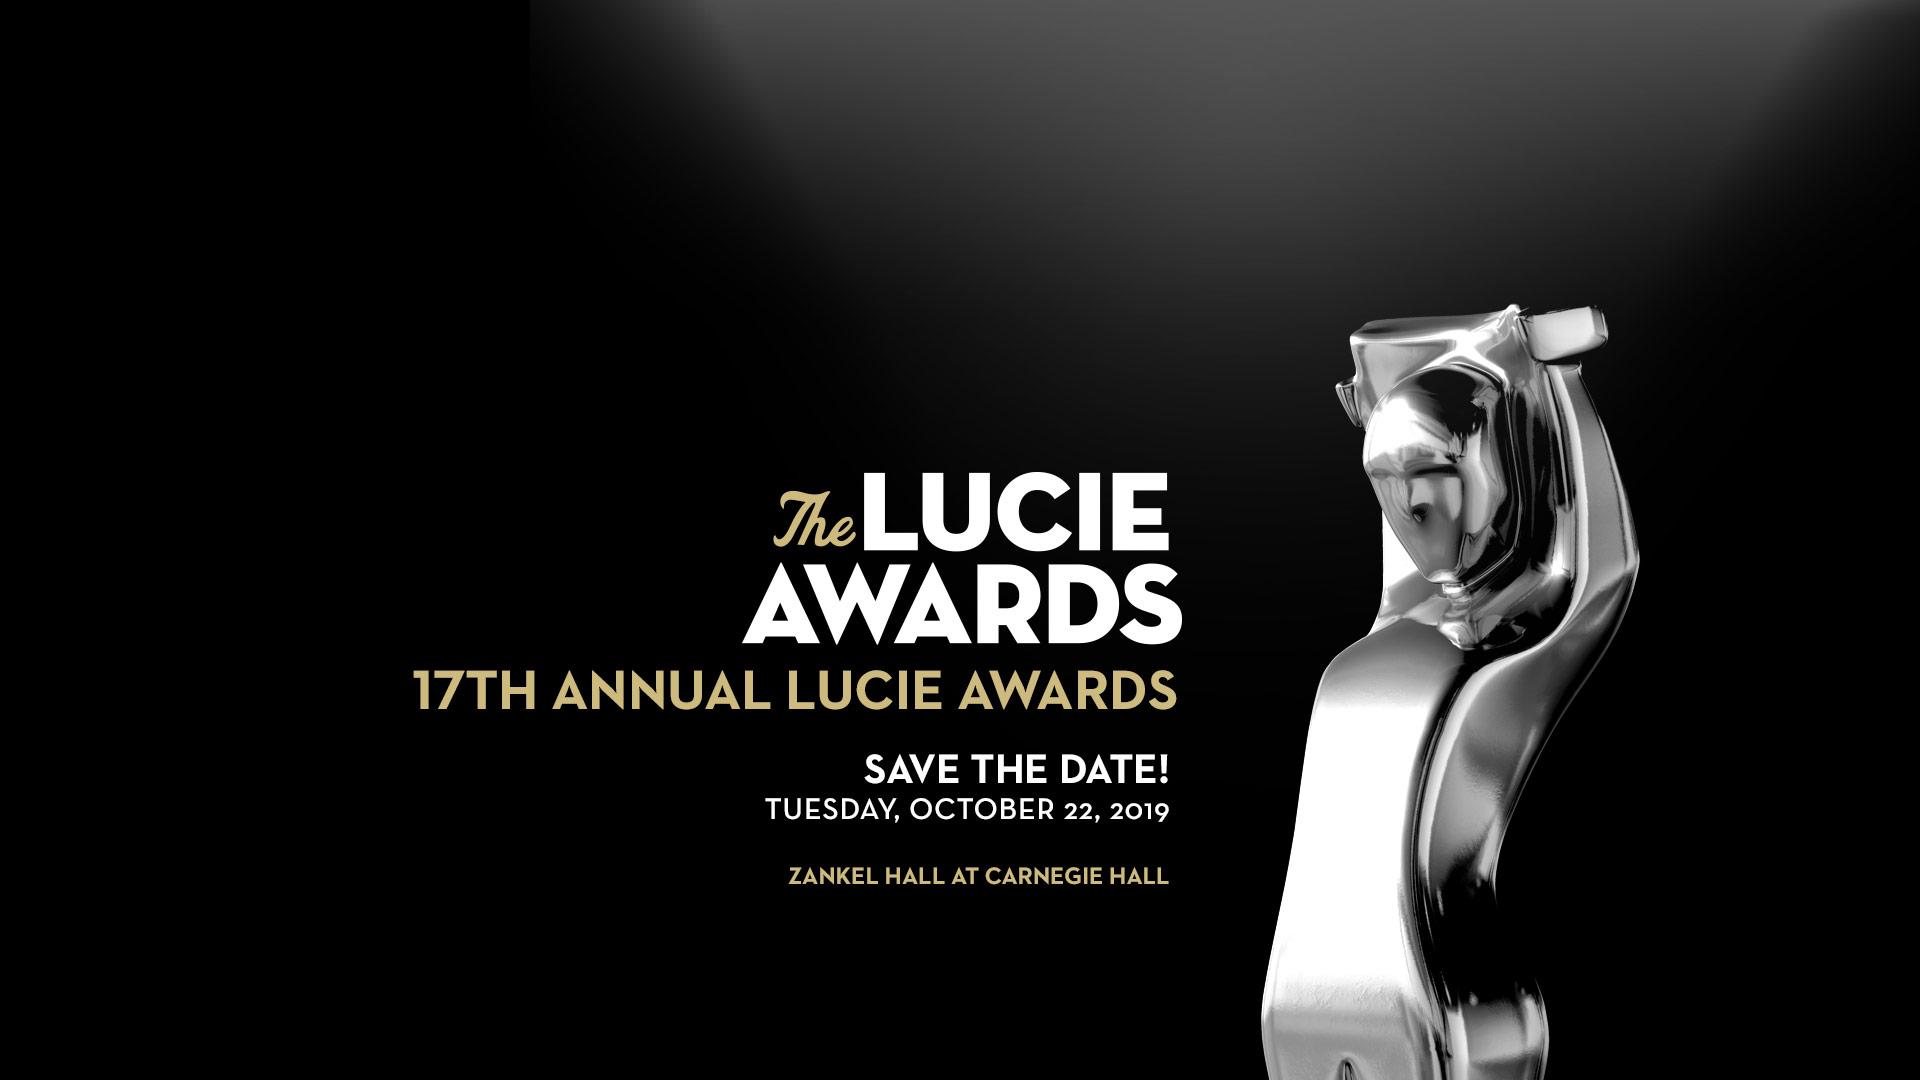 The Lucie Awards 2018